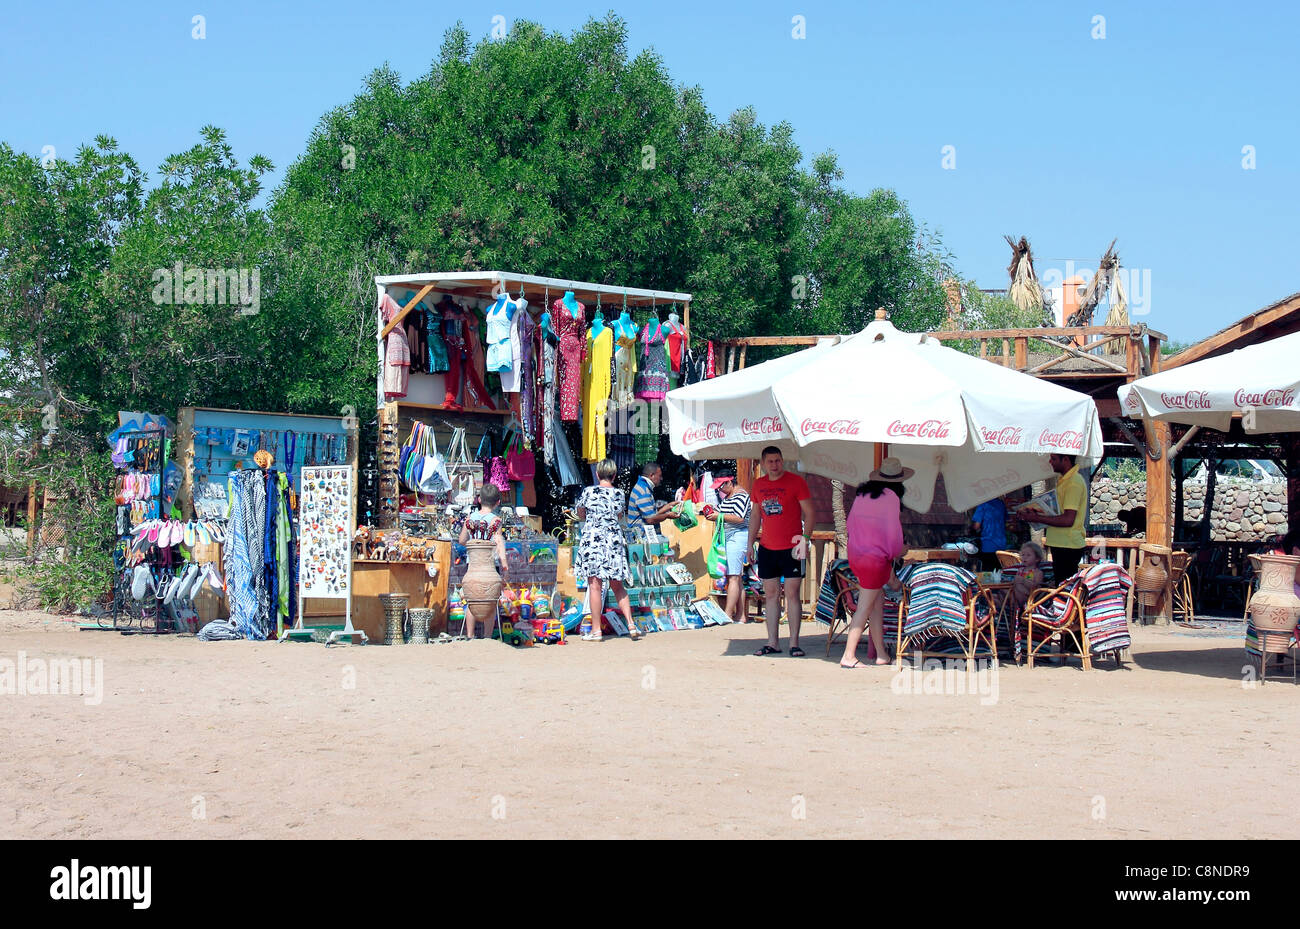 Beachside Market Stall and cafe on Sharm Bay Beach, Sharm El Sheikh, Egypt - Stock Image